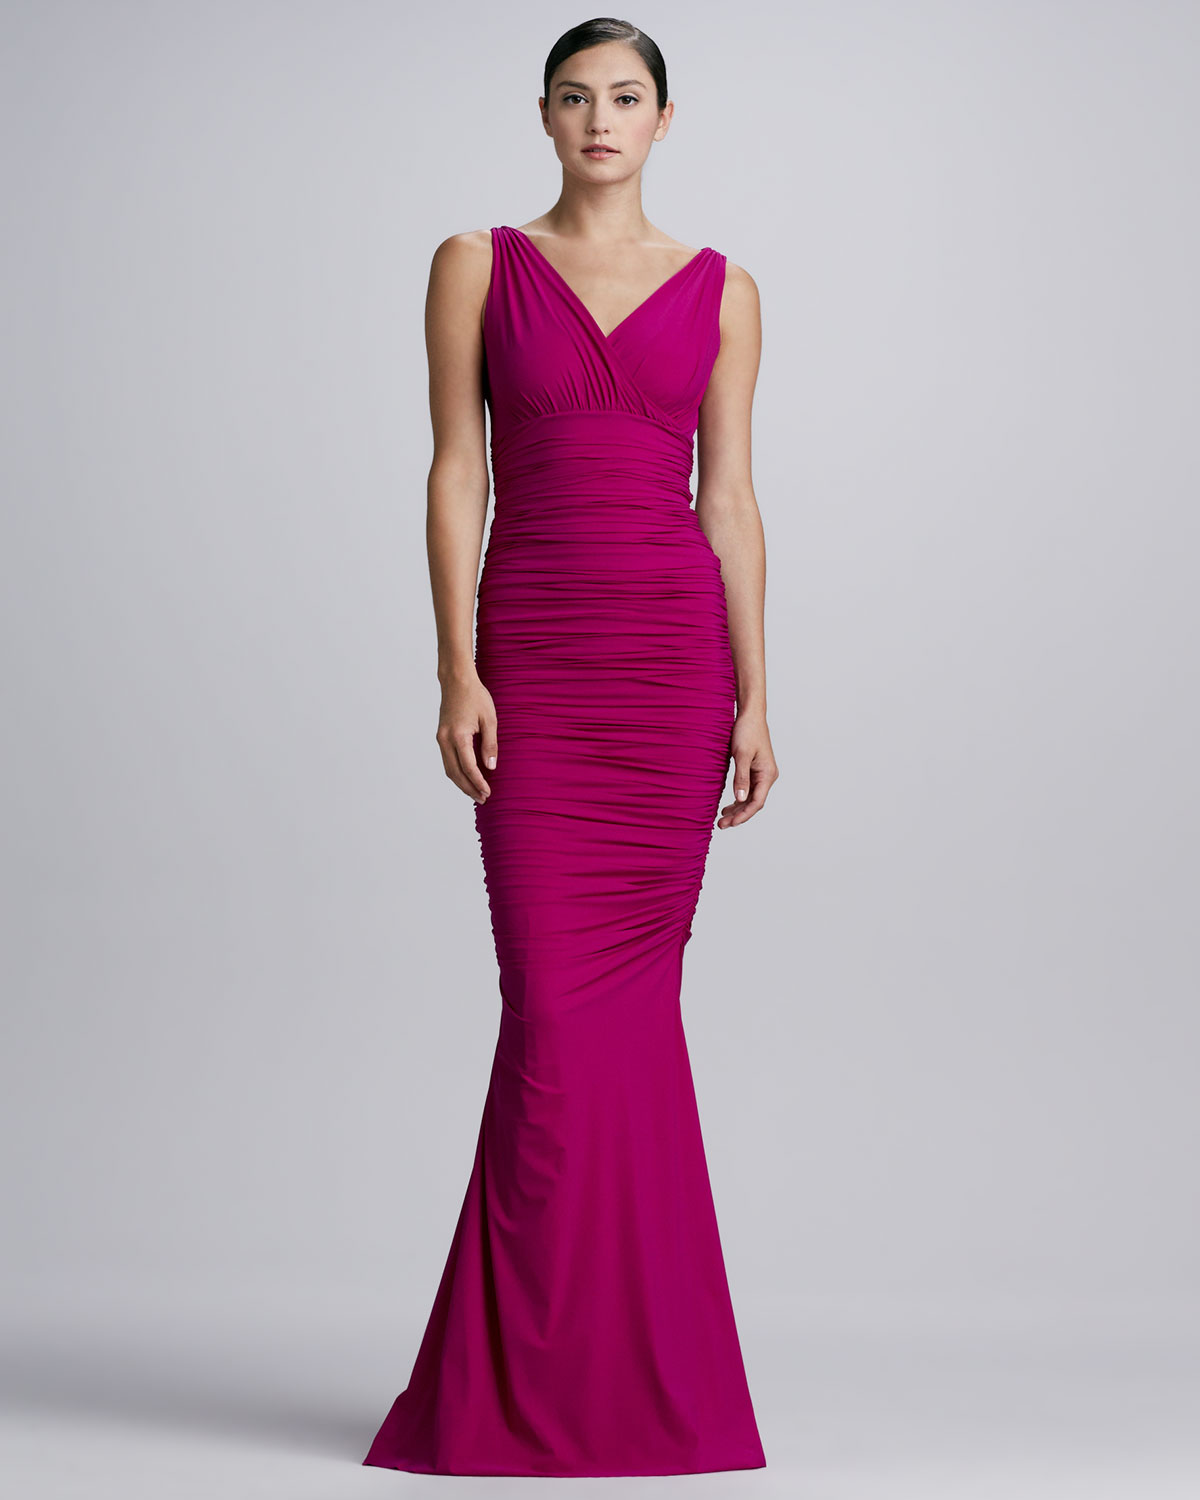 Chiara Boni The Most Popular Dress In America: La Petite Robe Di Chiara Boni Barbe Ruched Vneck